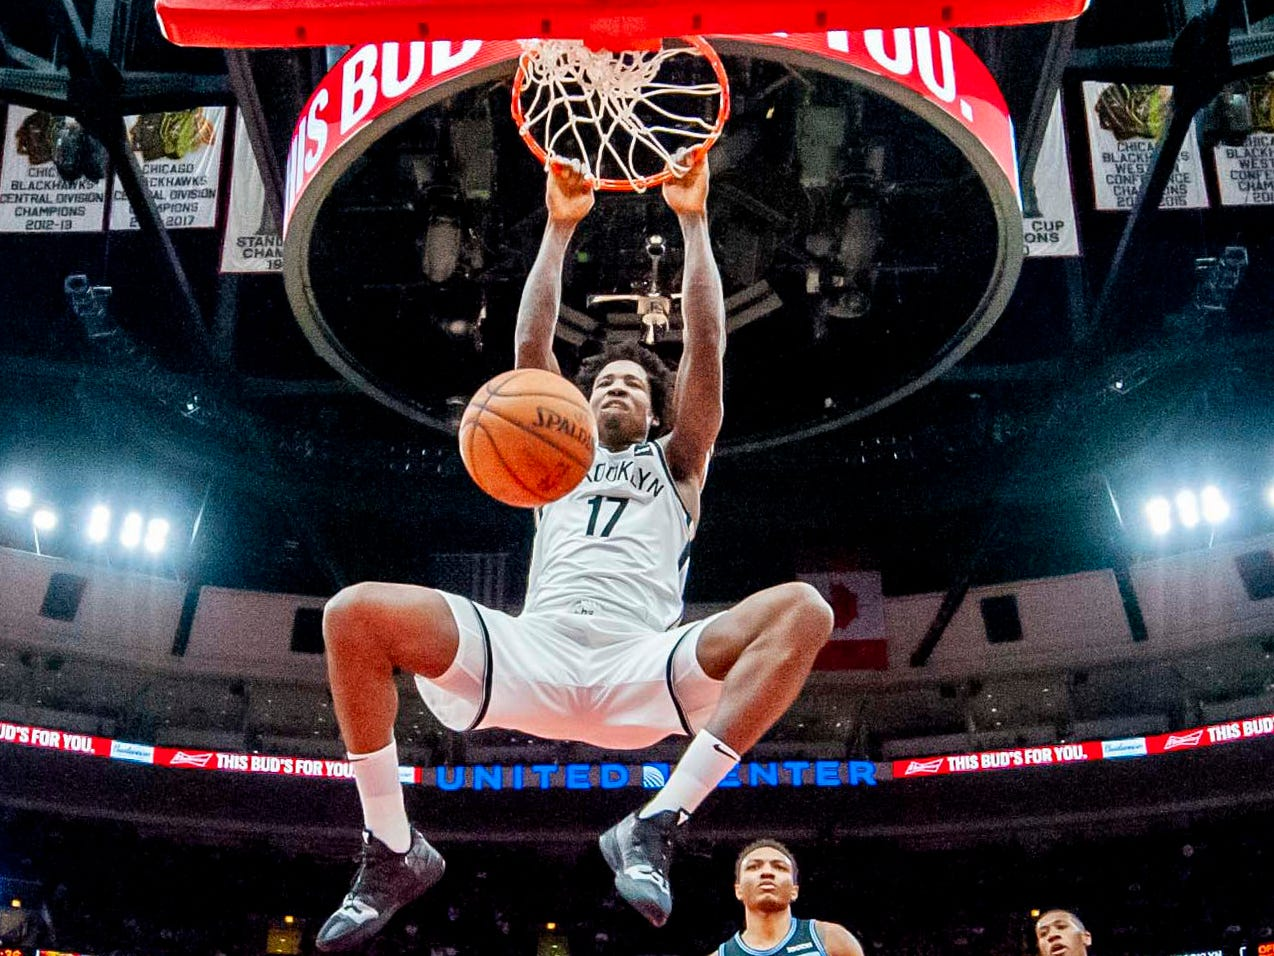 Jan. 6: Nets forward Ed Davis throws down a thunderous two-handed slam during the second half against the Bulls in Chicago.